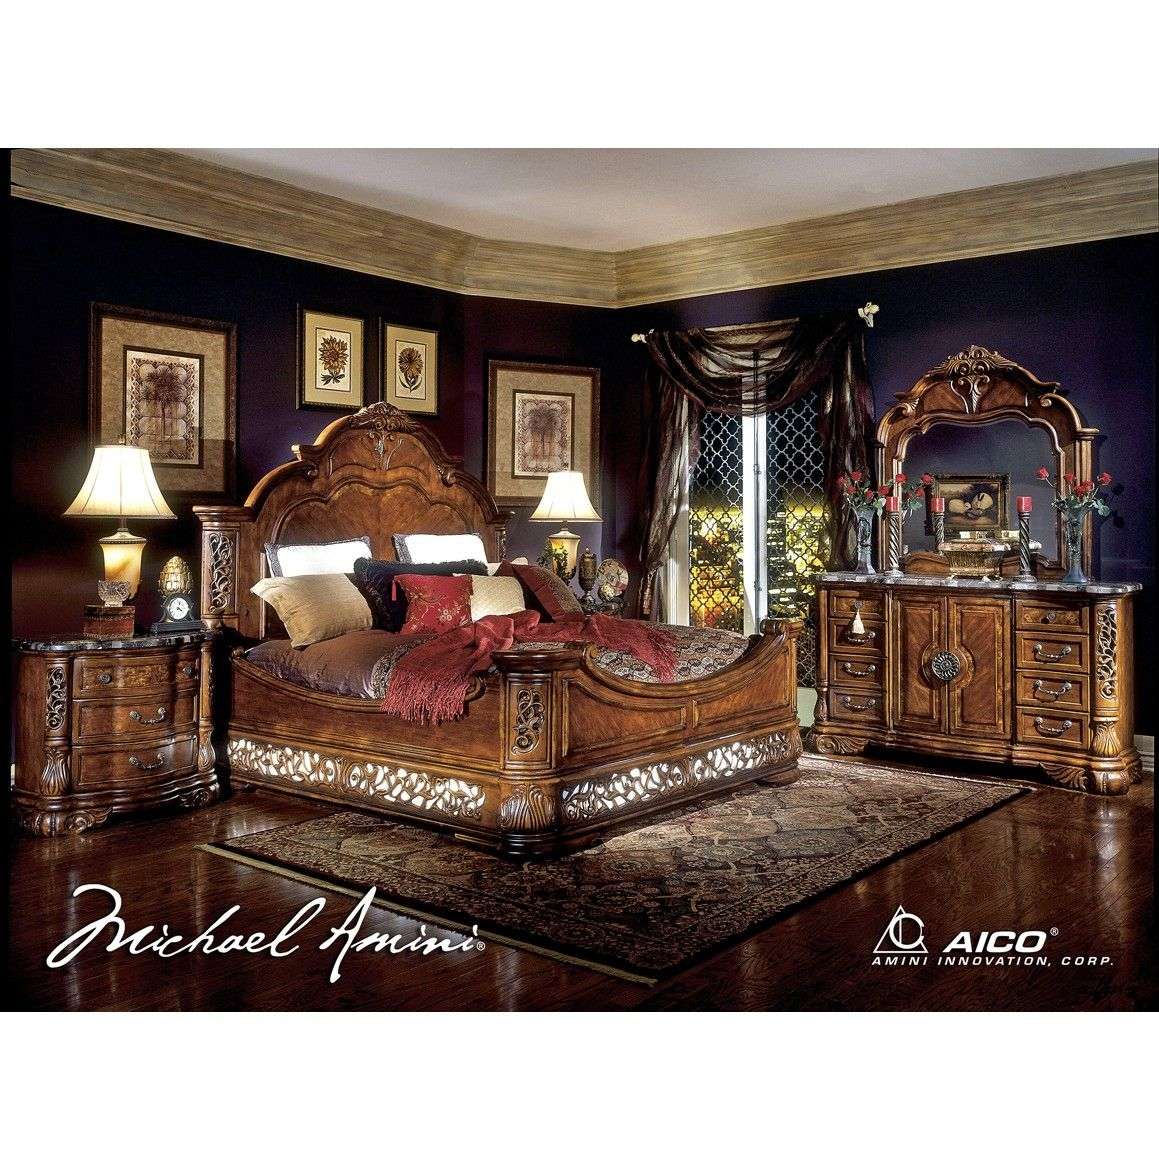 AICO Excelsior Bedroom Furniture by Michael Amini